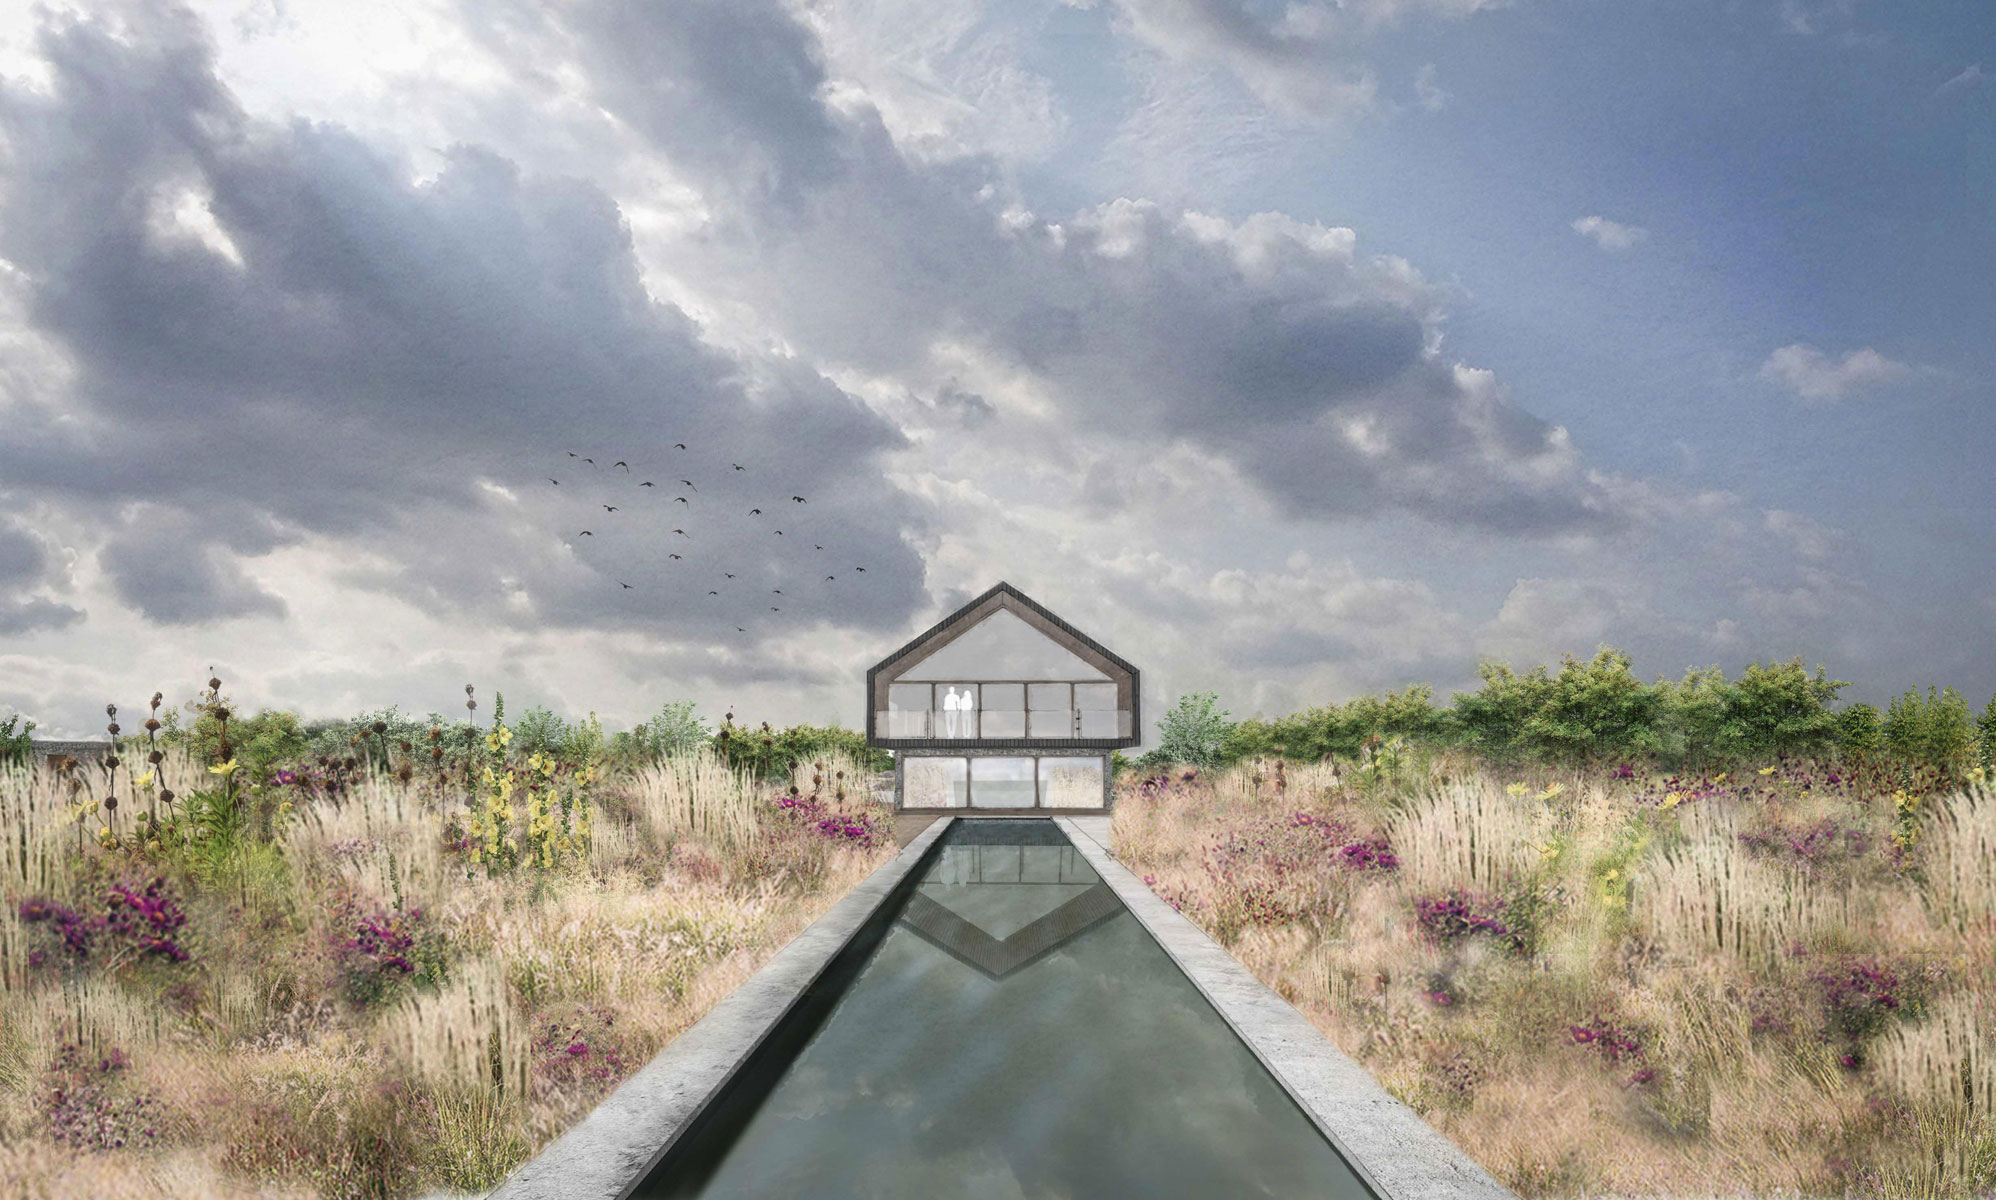 Colm Joseph Gardens- Field Barn Suffolk modern architecture garden design swimming pool naturalistic planting